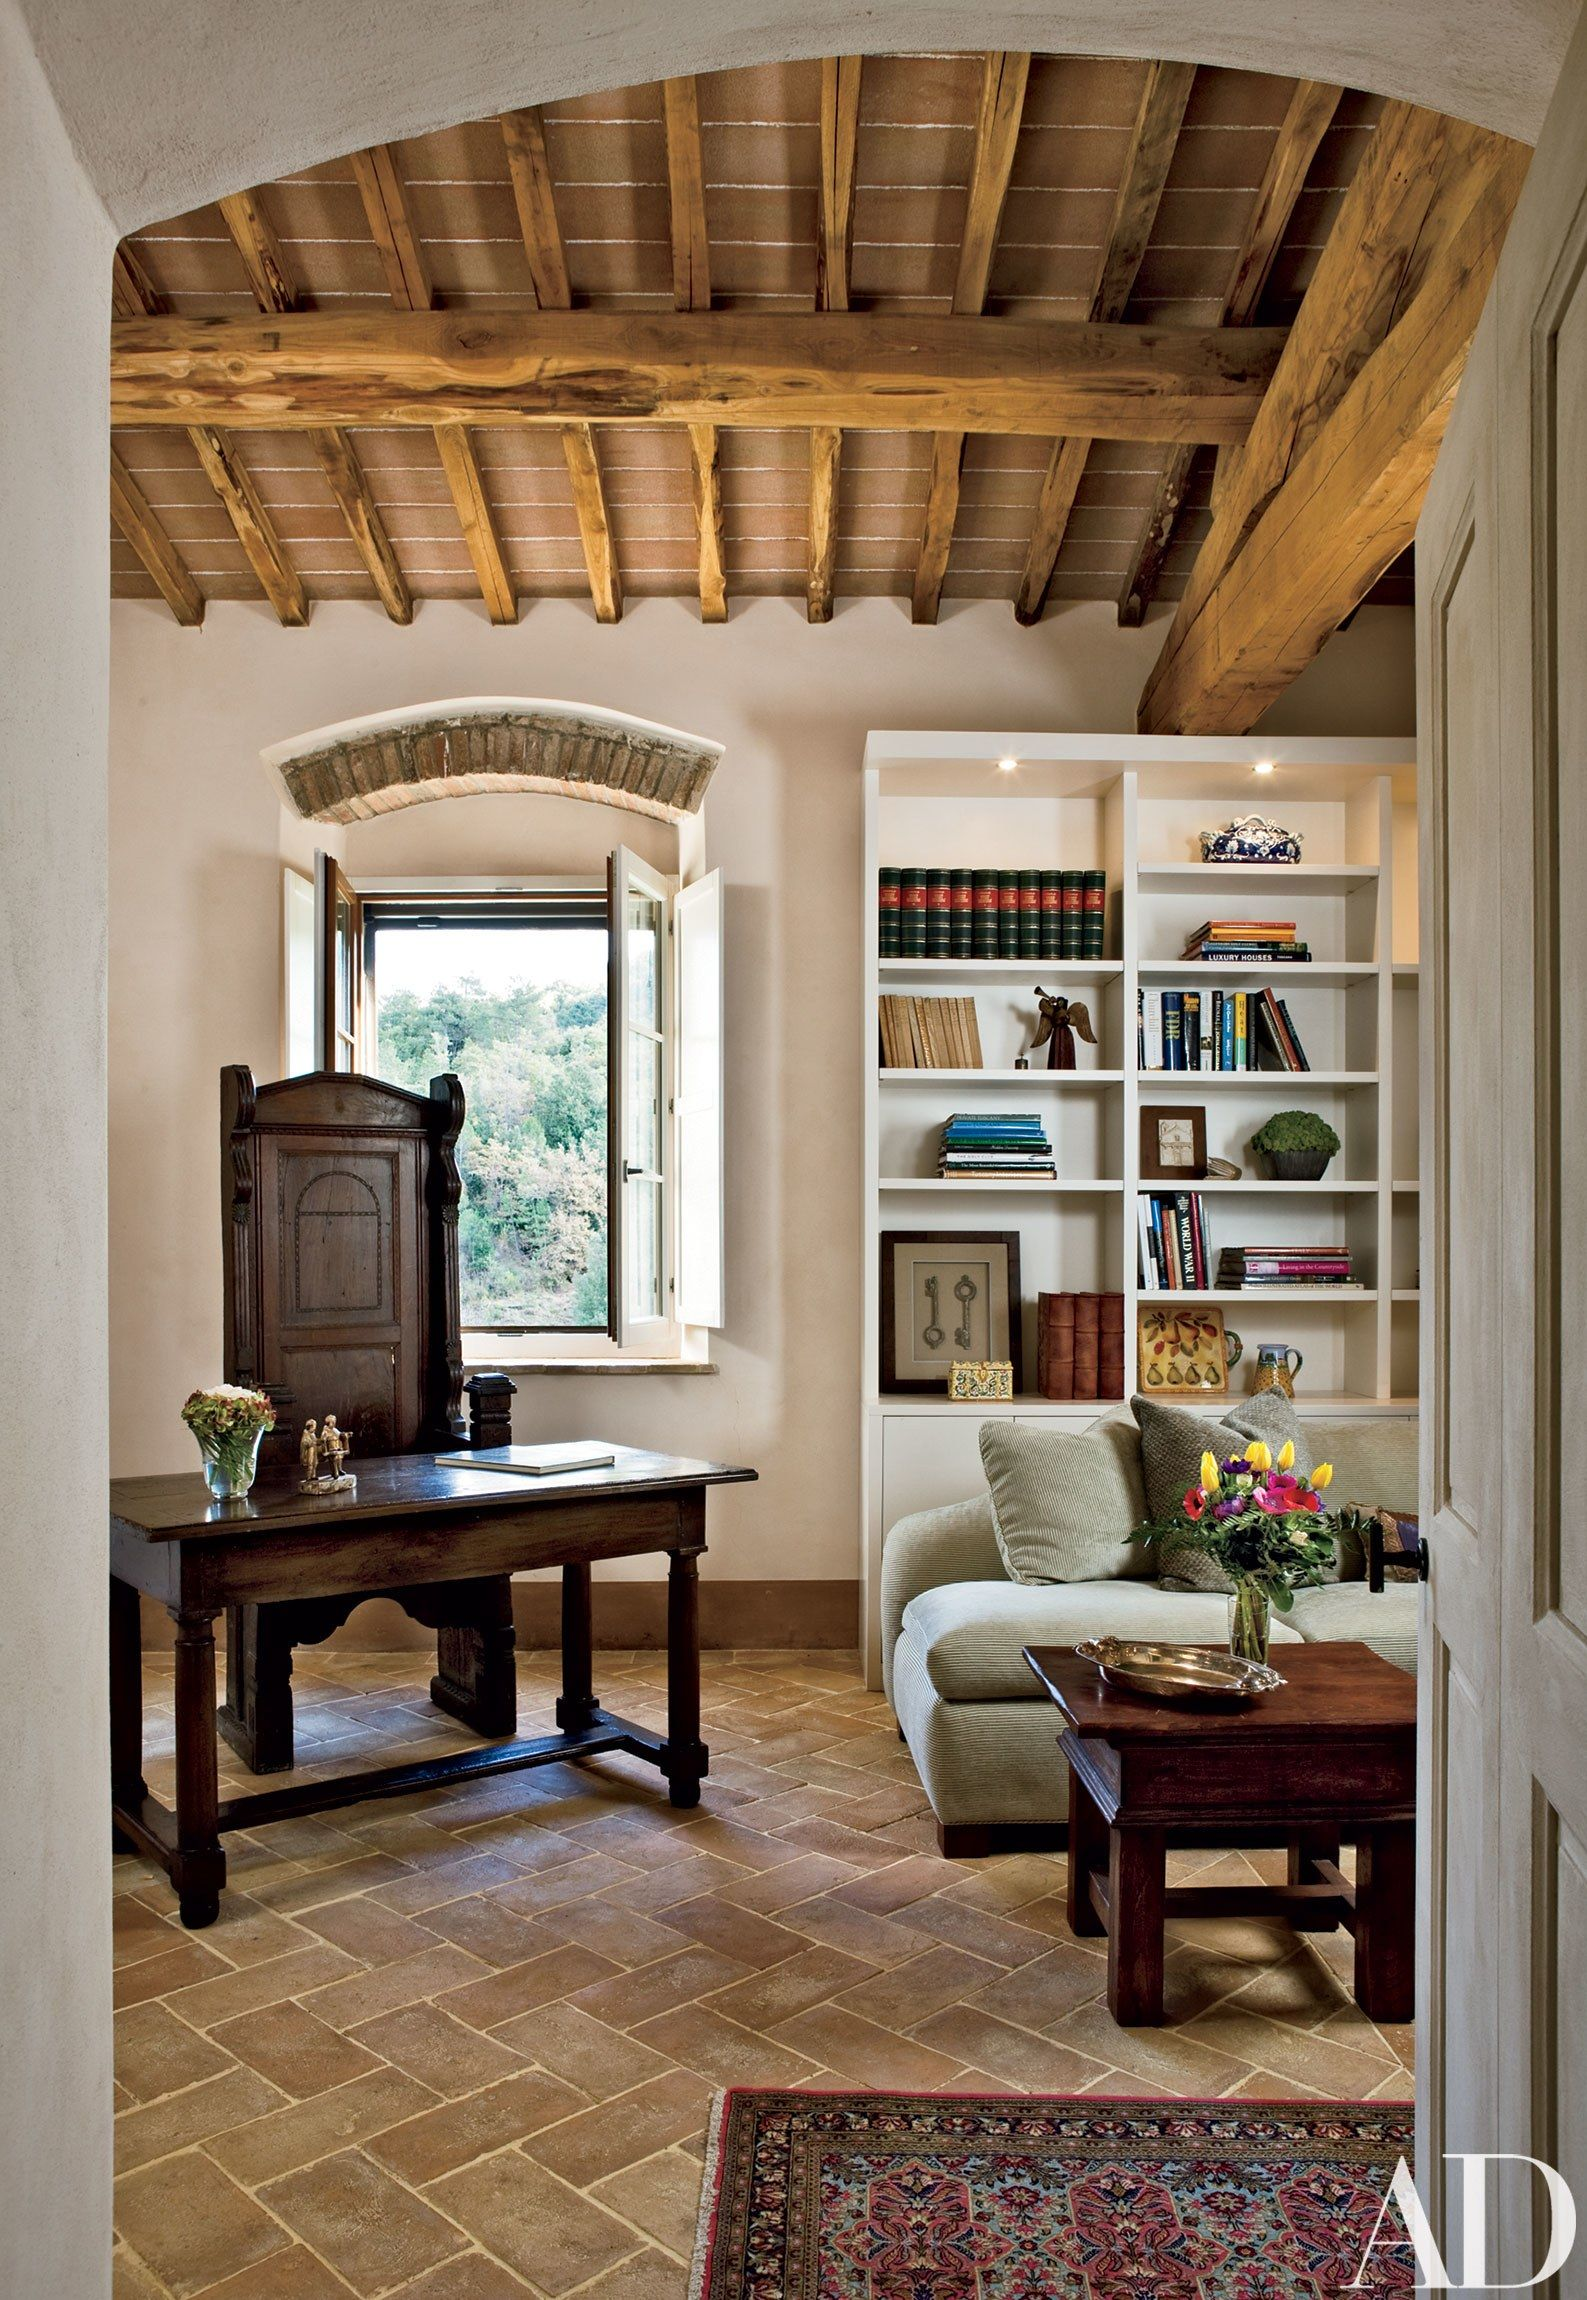 A Property In Tuscany Is Restored To Reflect Its Historical